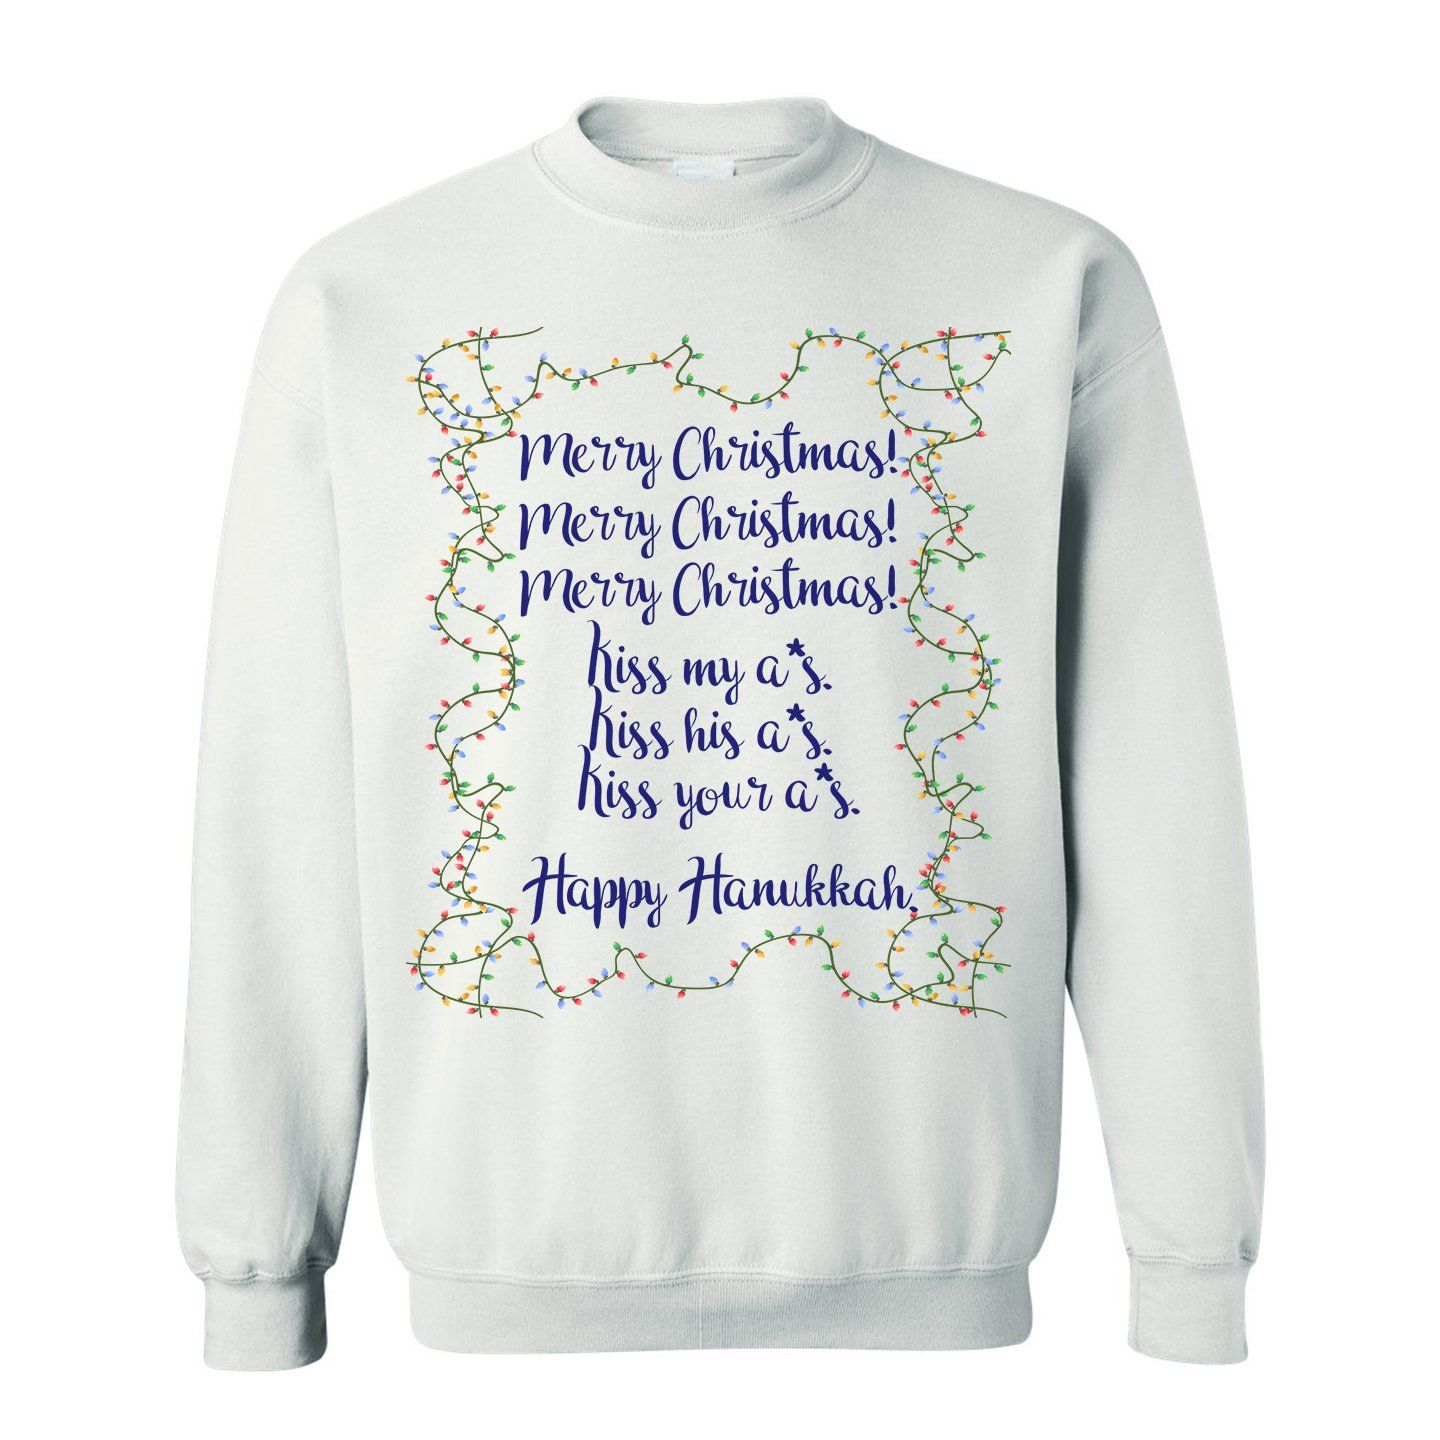 Mature Christmas Ugly Christmas Sweater  Products -7602